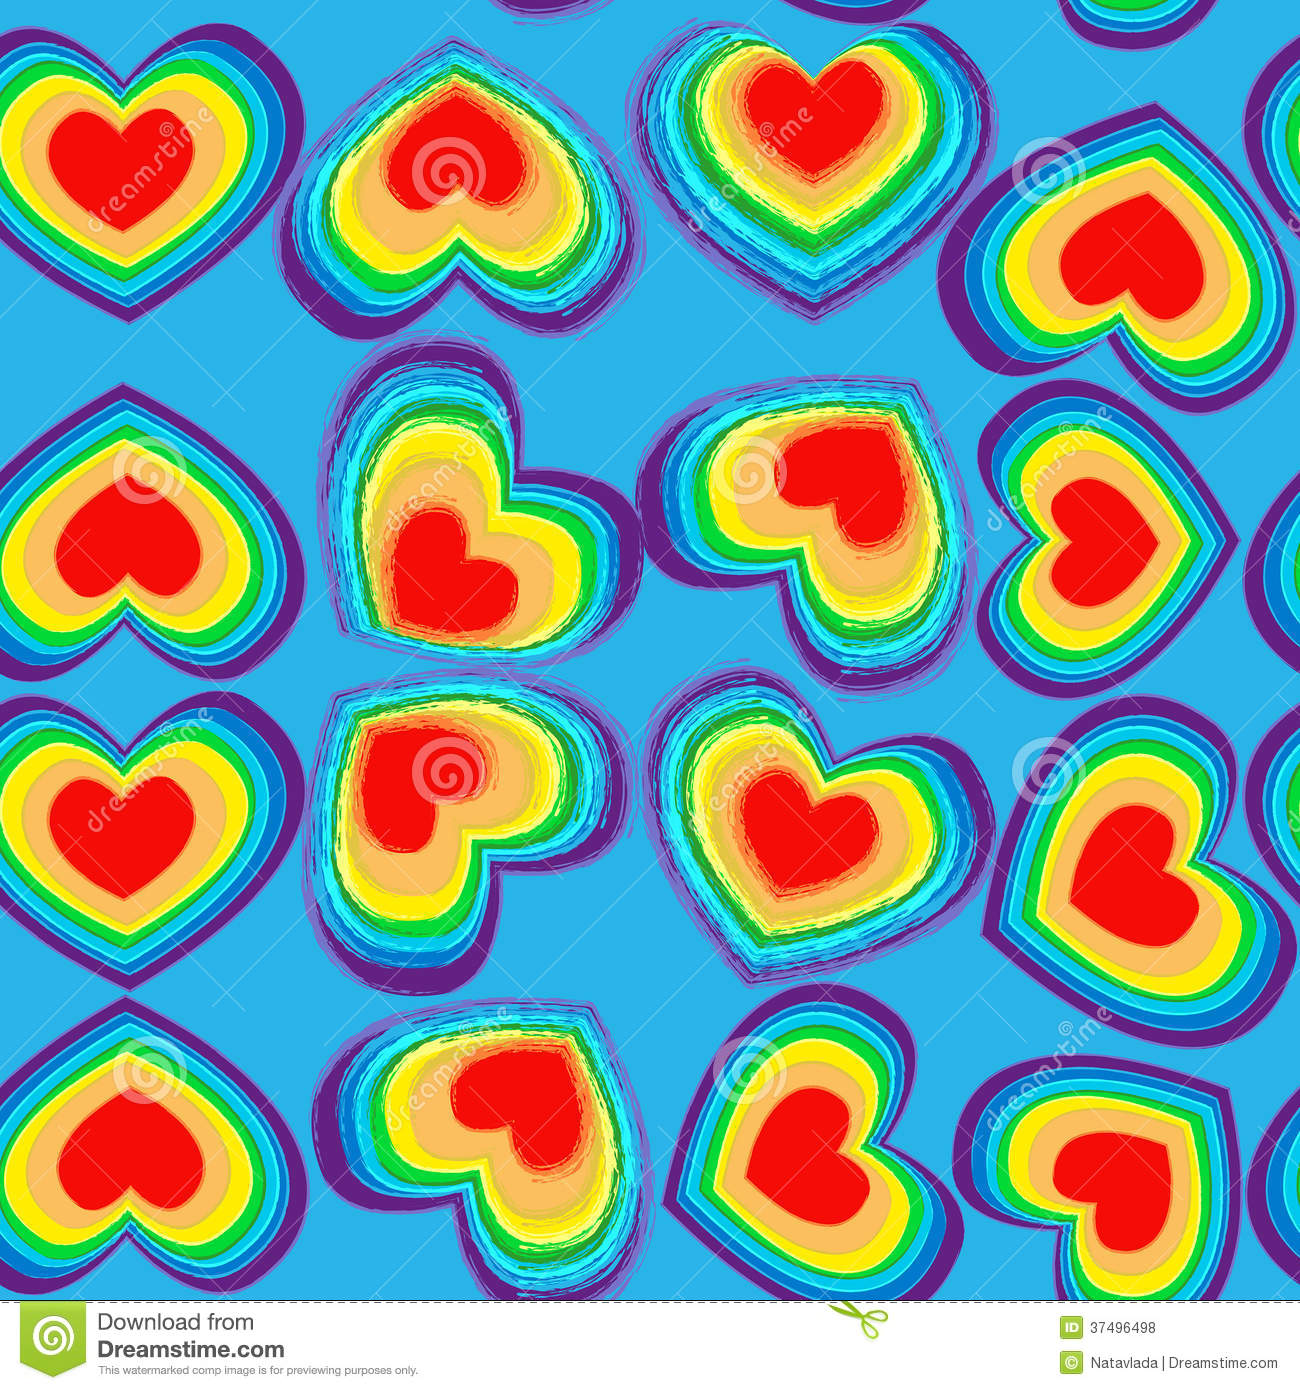 Cute Colour Wallpaper Rainbow Hearts Seamless Pattern Stock Vector